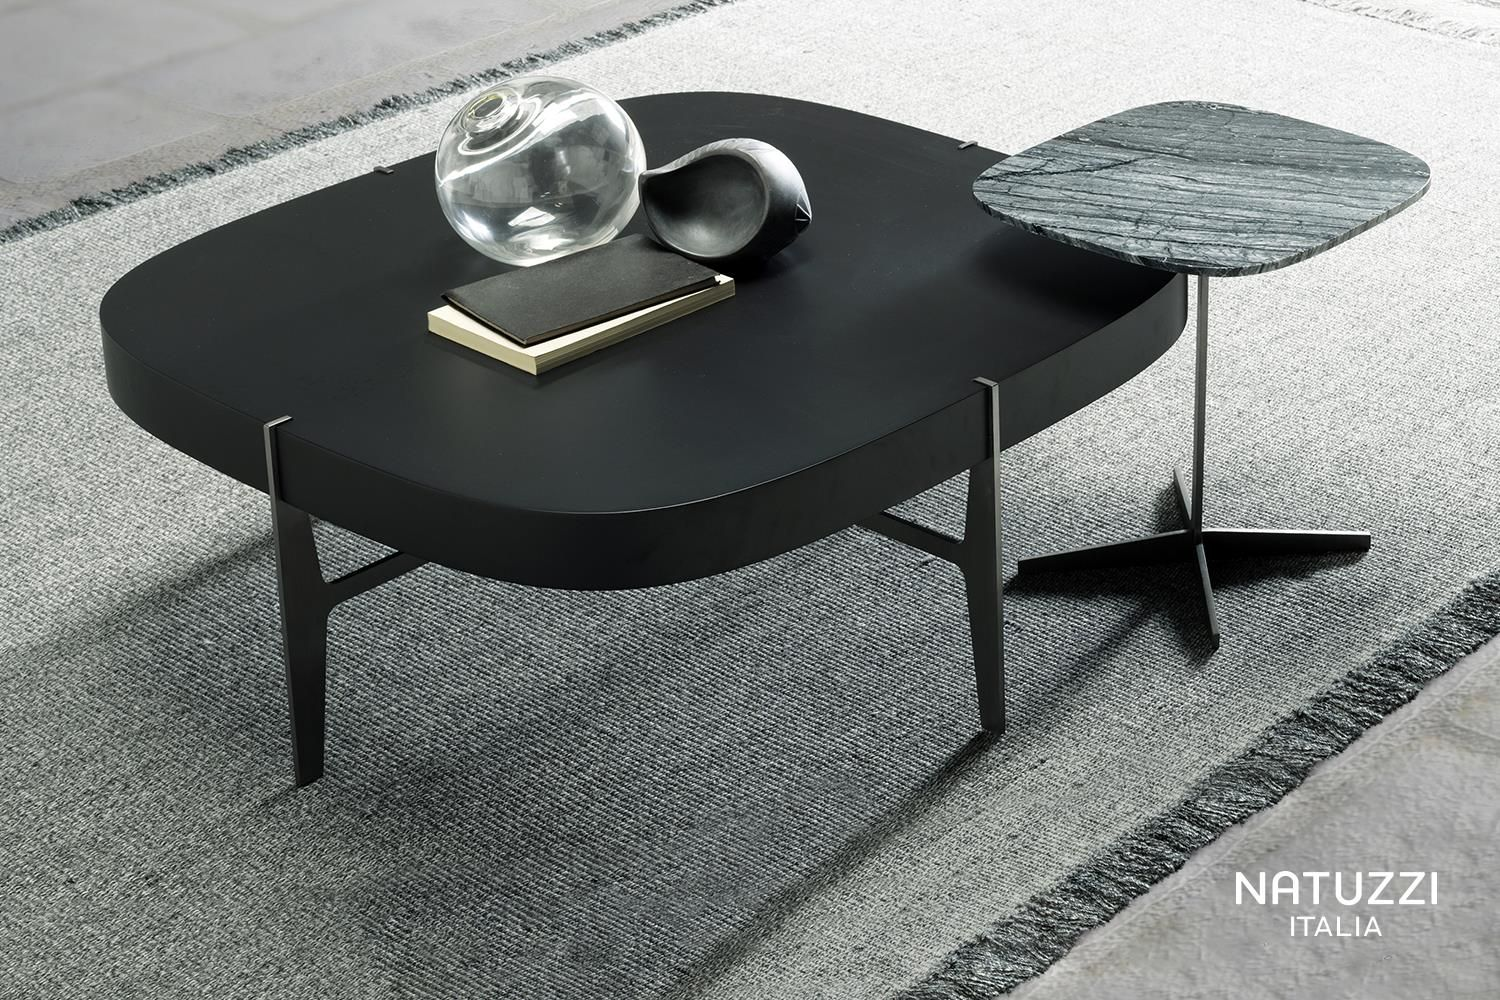 Couchtisch Natuzzi Thanks To Its System Of Cubic Elements Ido Coffee Table